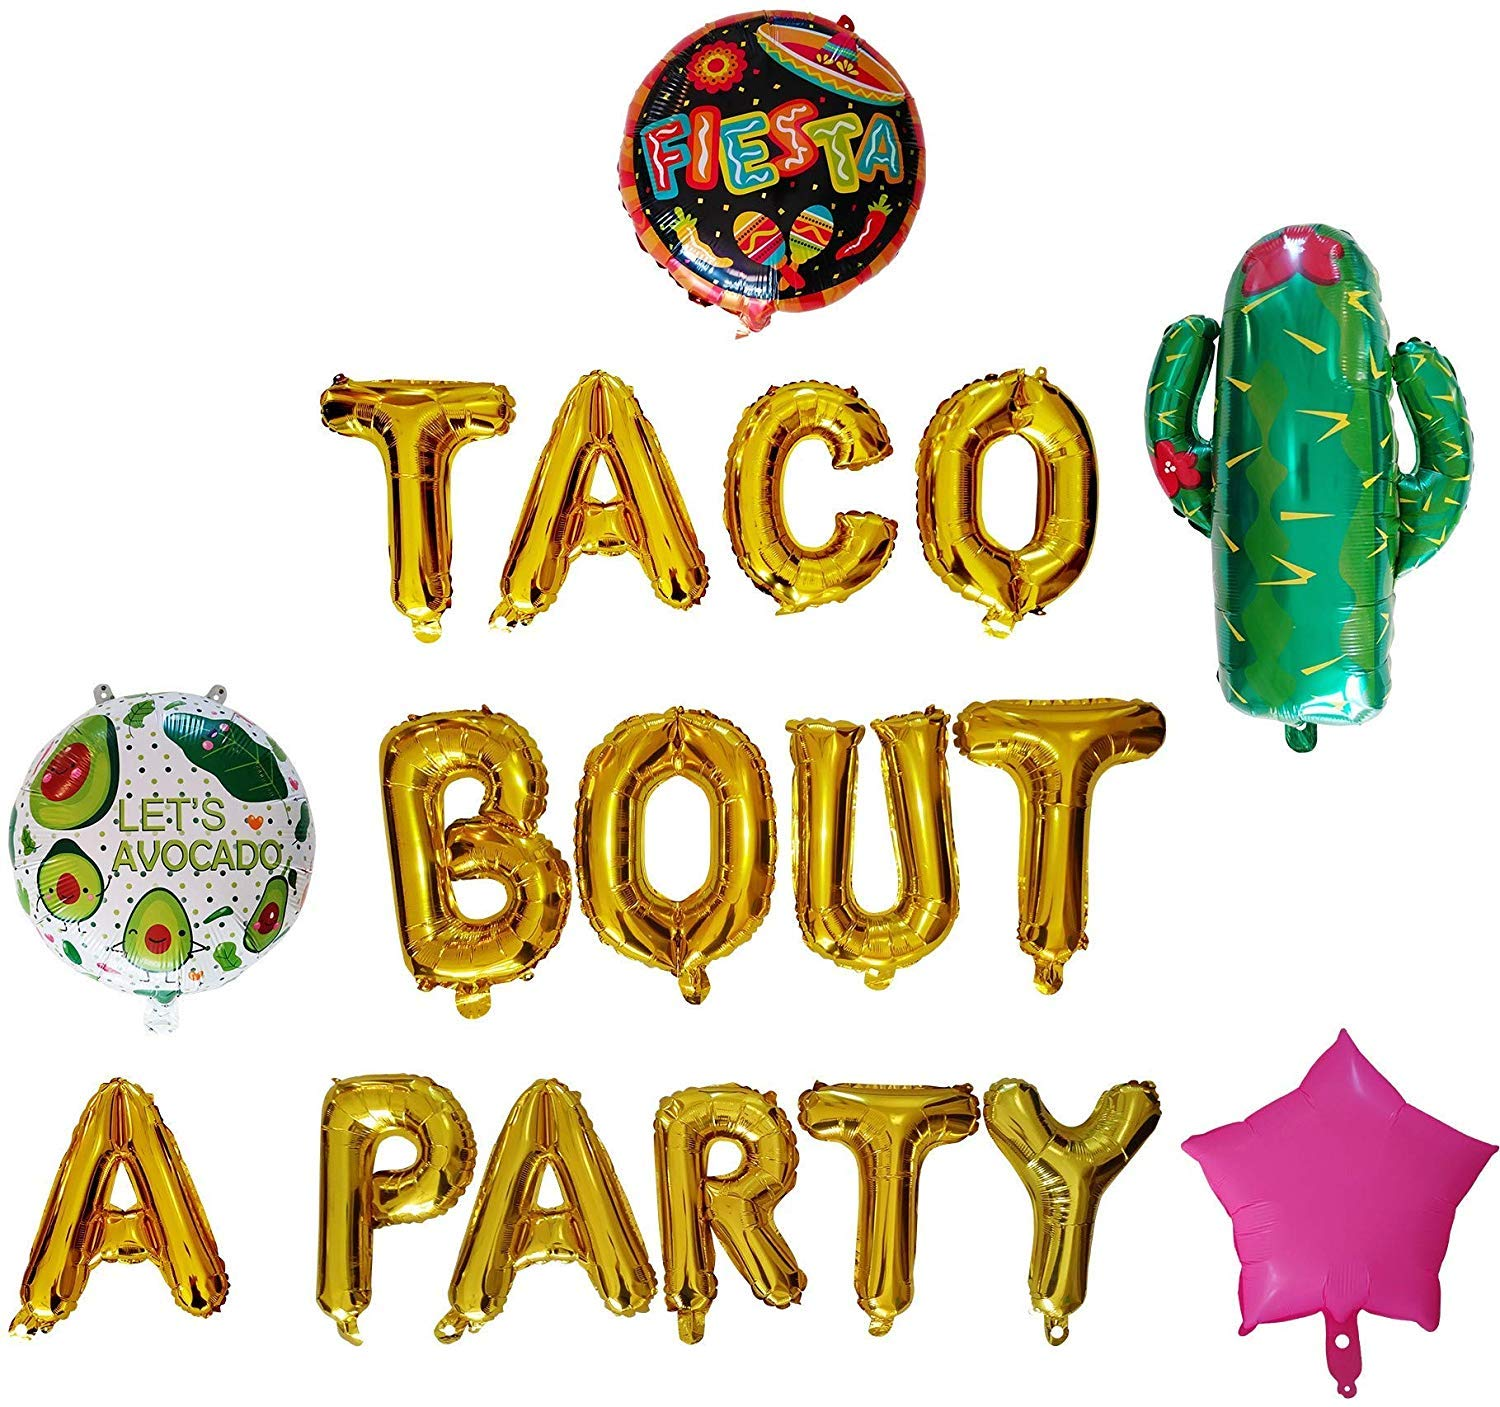 Fiesta Theme Party Supplies, Taco bout a party Foil Balloons set. (18 pieces) Cactus balloon, taco party decorations, taco twosday birthday party, Festival Luau Hawaii children's party Decoration,banner (Gold)